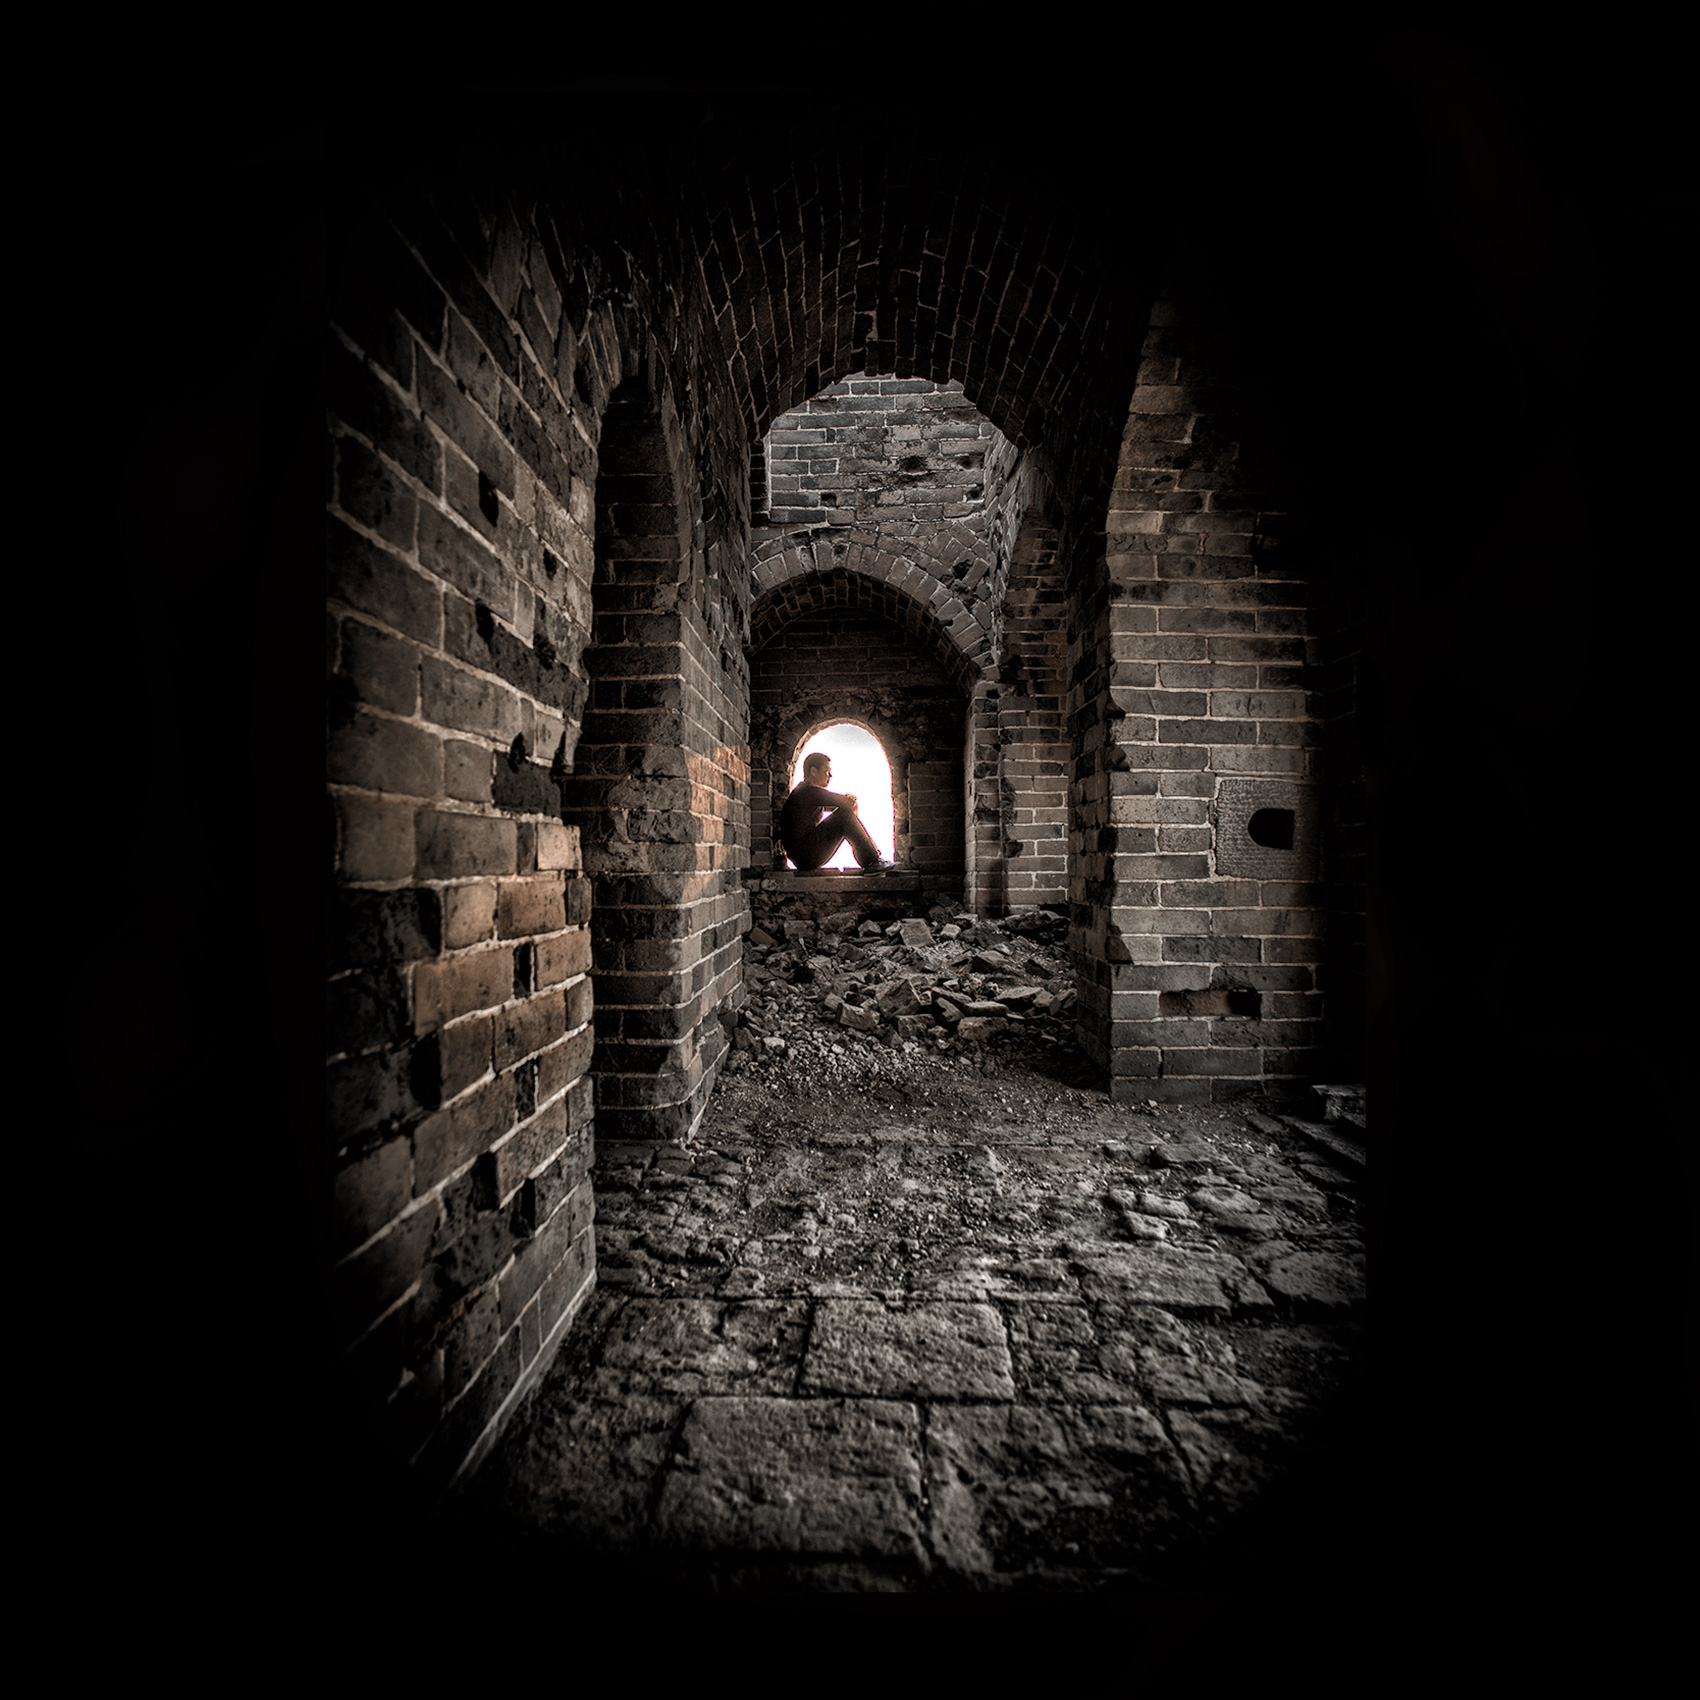 a-man-is-silhouetted-as-he-sits-inside-a-windowsill-in-an-ancient-guard-tower-on-the-great-wall-of-china